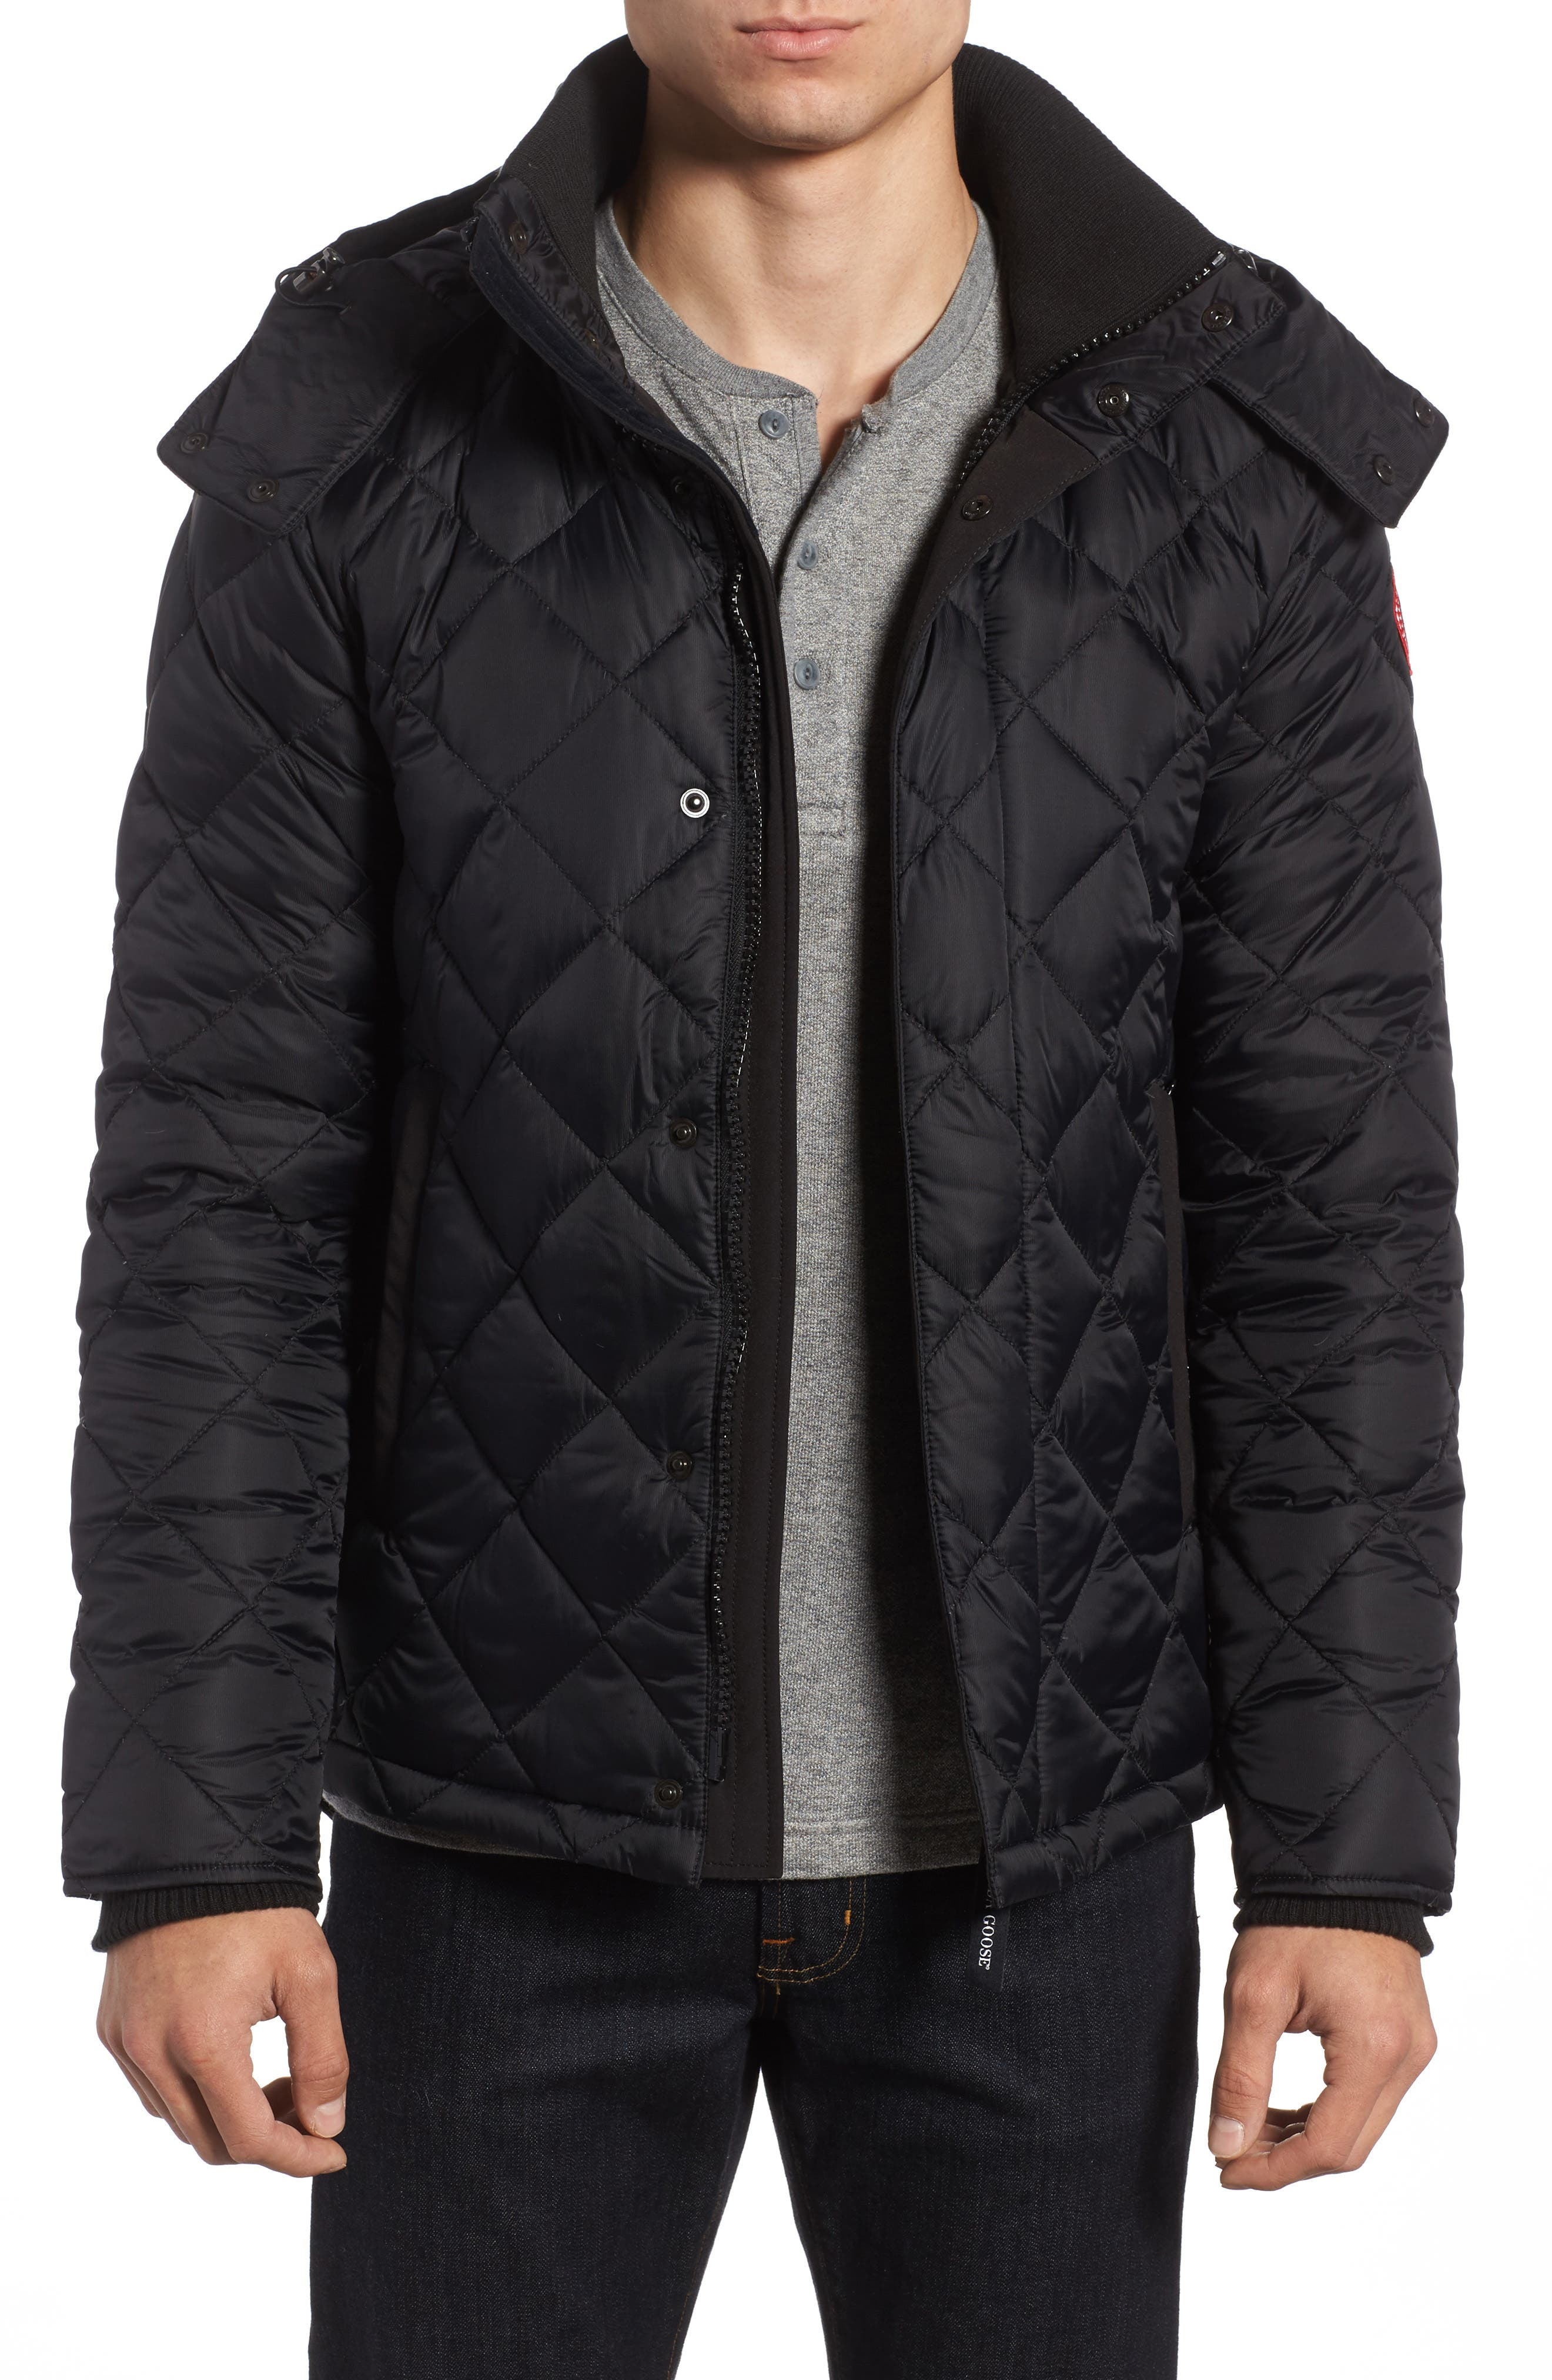 Hendriksen Slim Fit Quilted Down Coat,                         Main,                         color, BLACK